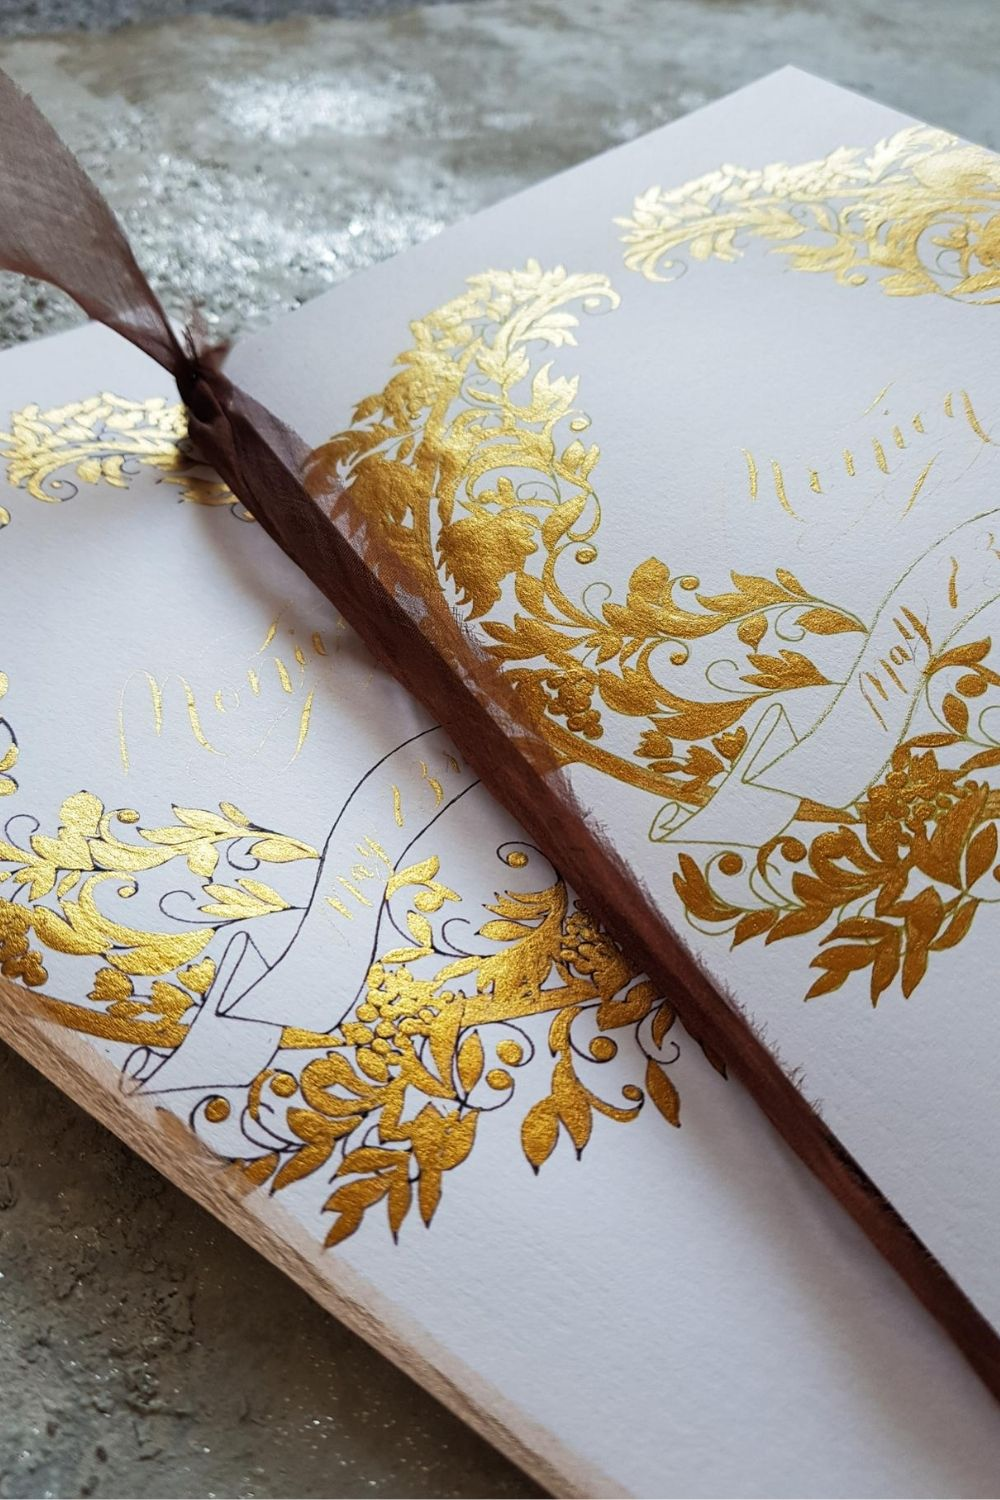 Shangri-La Paris Wedding menus with gold hand painted crest design